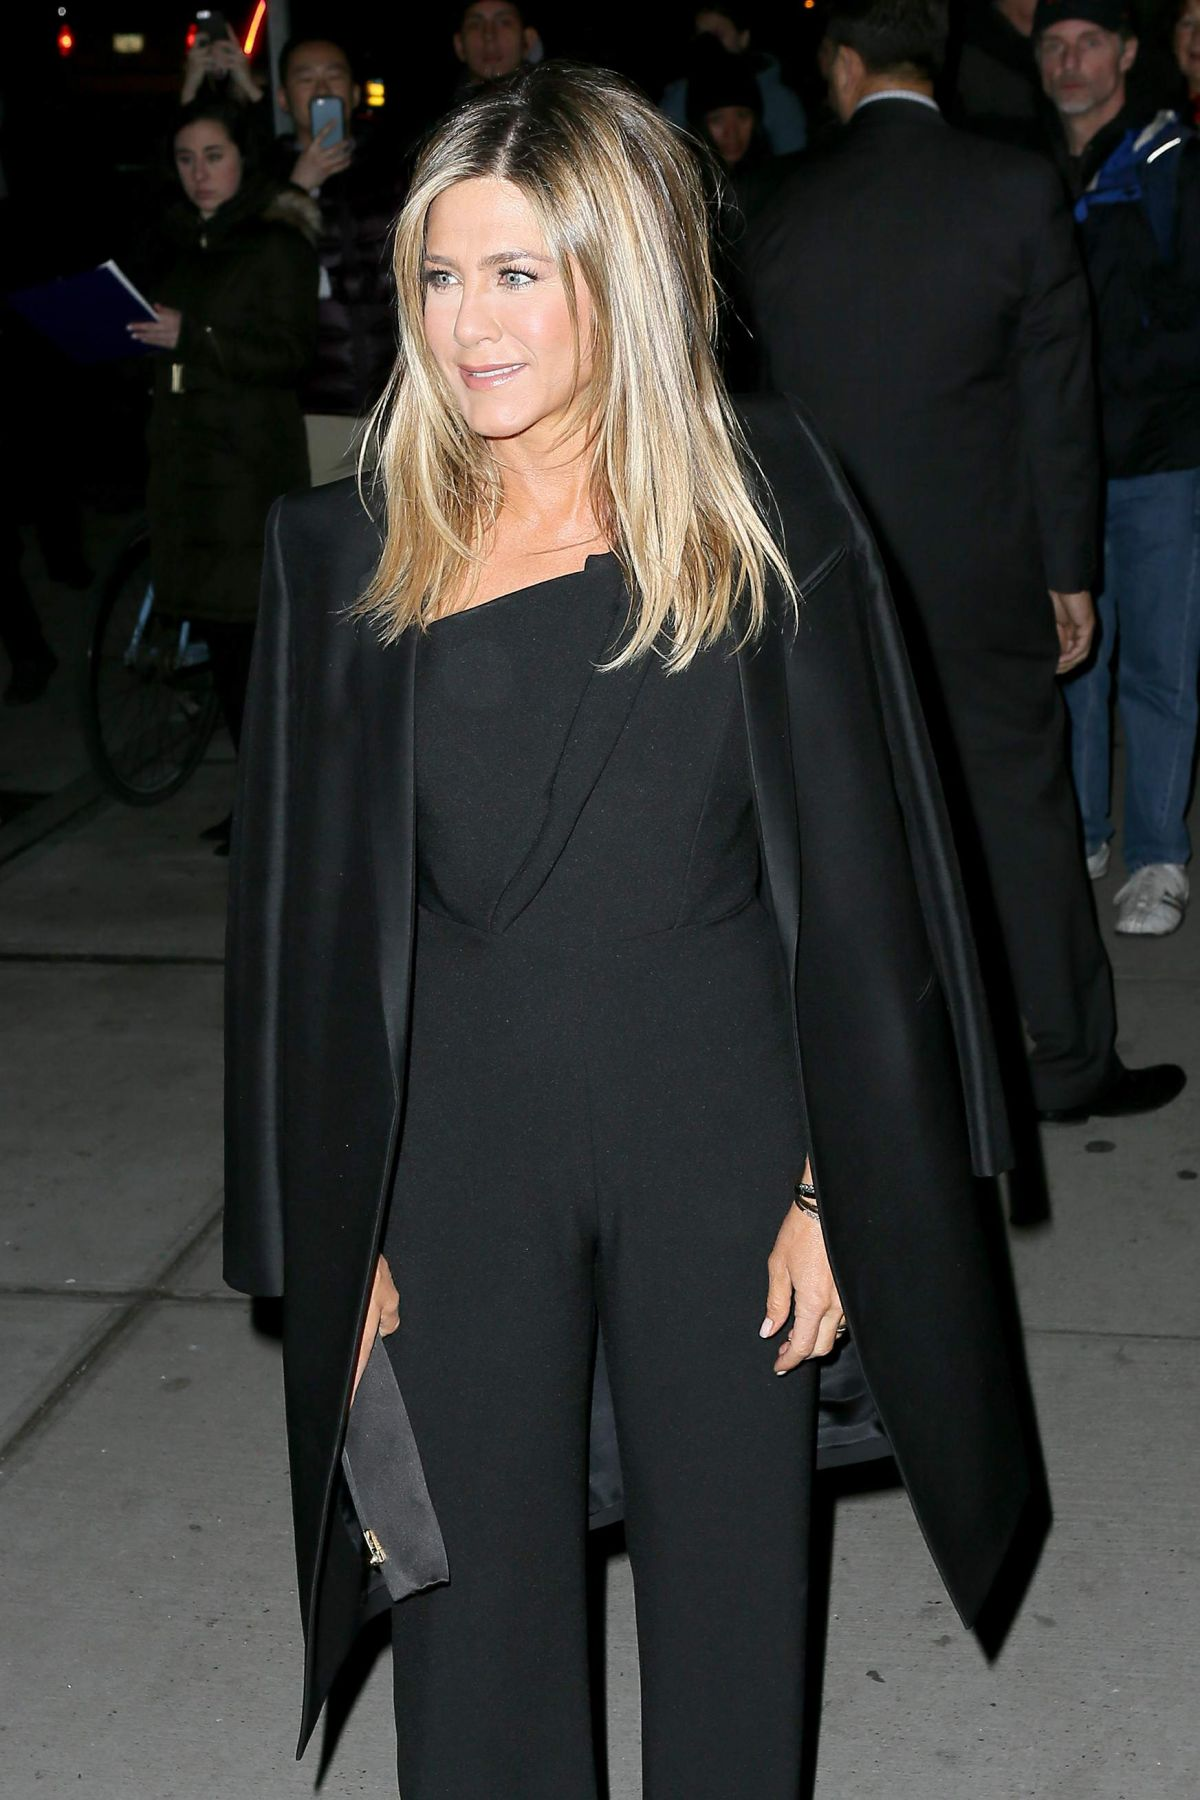 Jennifer Aniston Seen at 'Office Christmas Party' at Landmark Sunshine Cinema, NY   jennifer-aniston-seen-at-office-christmas-party-at-landmark-sunshine-cinema-ny_8